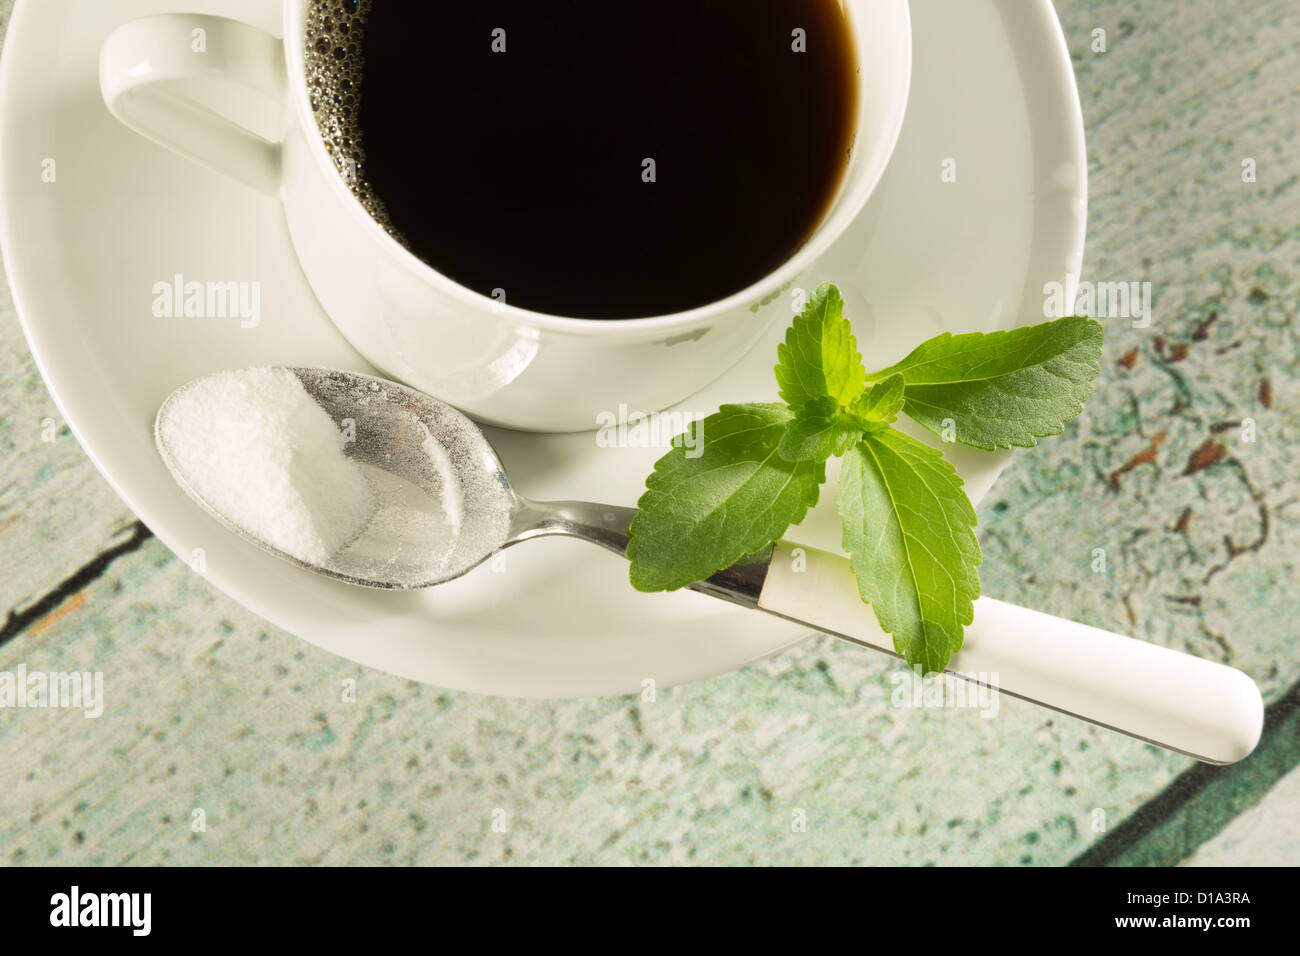 Highkey image of a cup of coffee with natural sweetener stevia - Stock Image